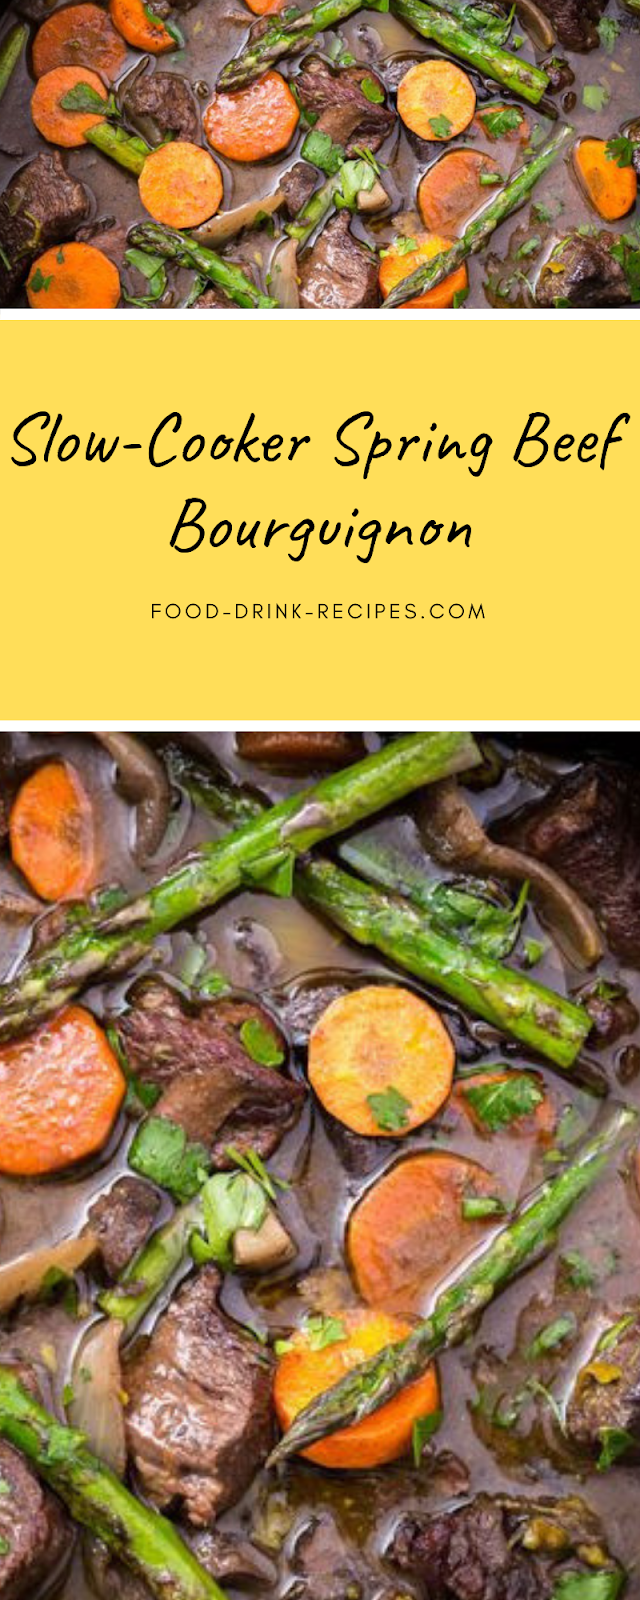 Slow-Cooker Spring Beef Bourguignon - food-drink-recipes.com